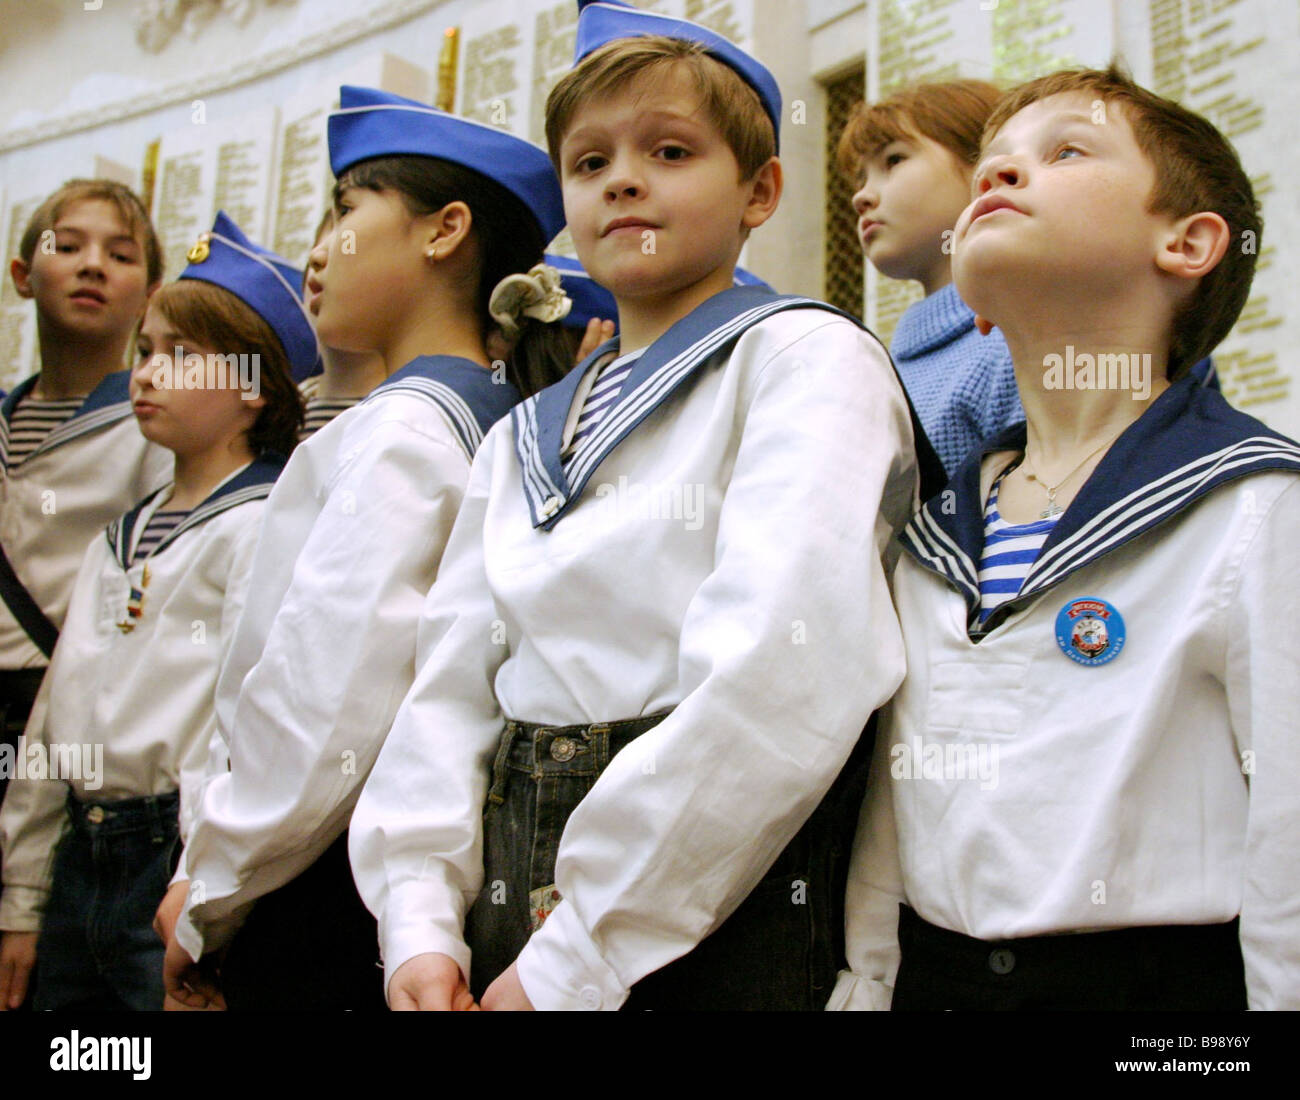 Nationwide meeting of young Russian servicemen cadets and students of navy schools cadet corps and schools with - Stock Image